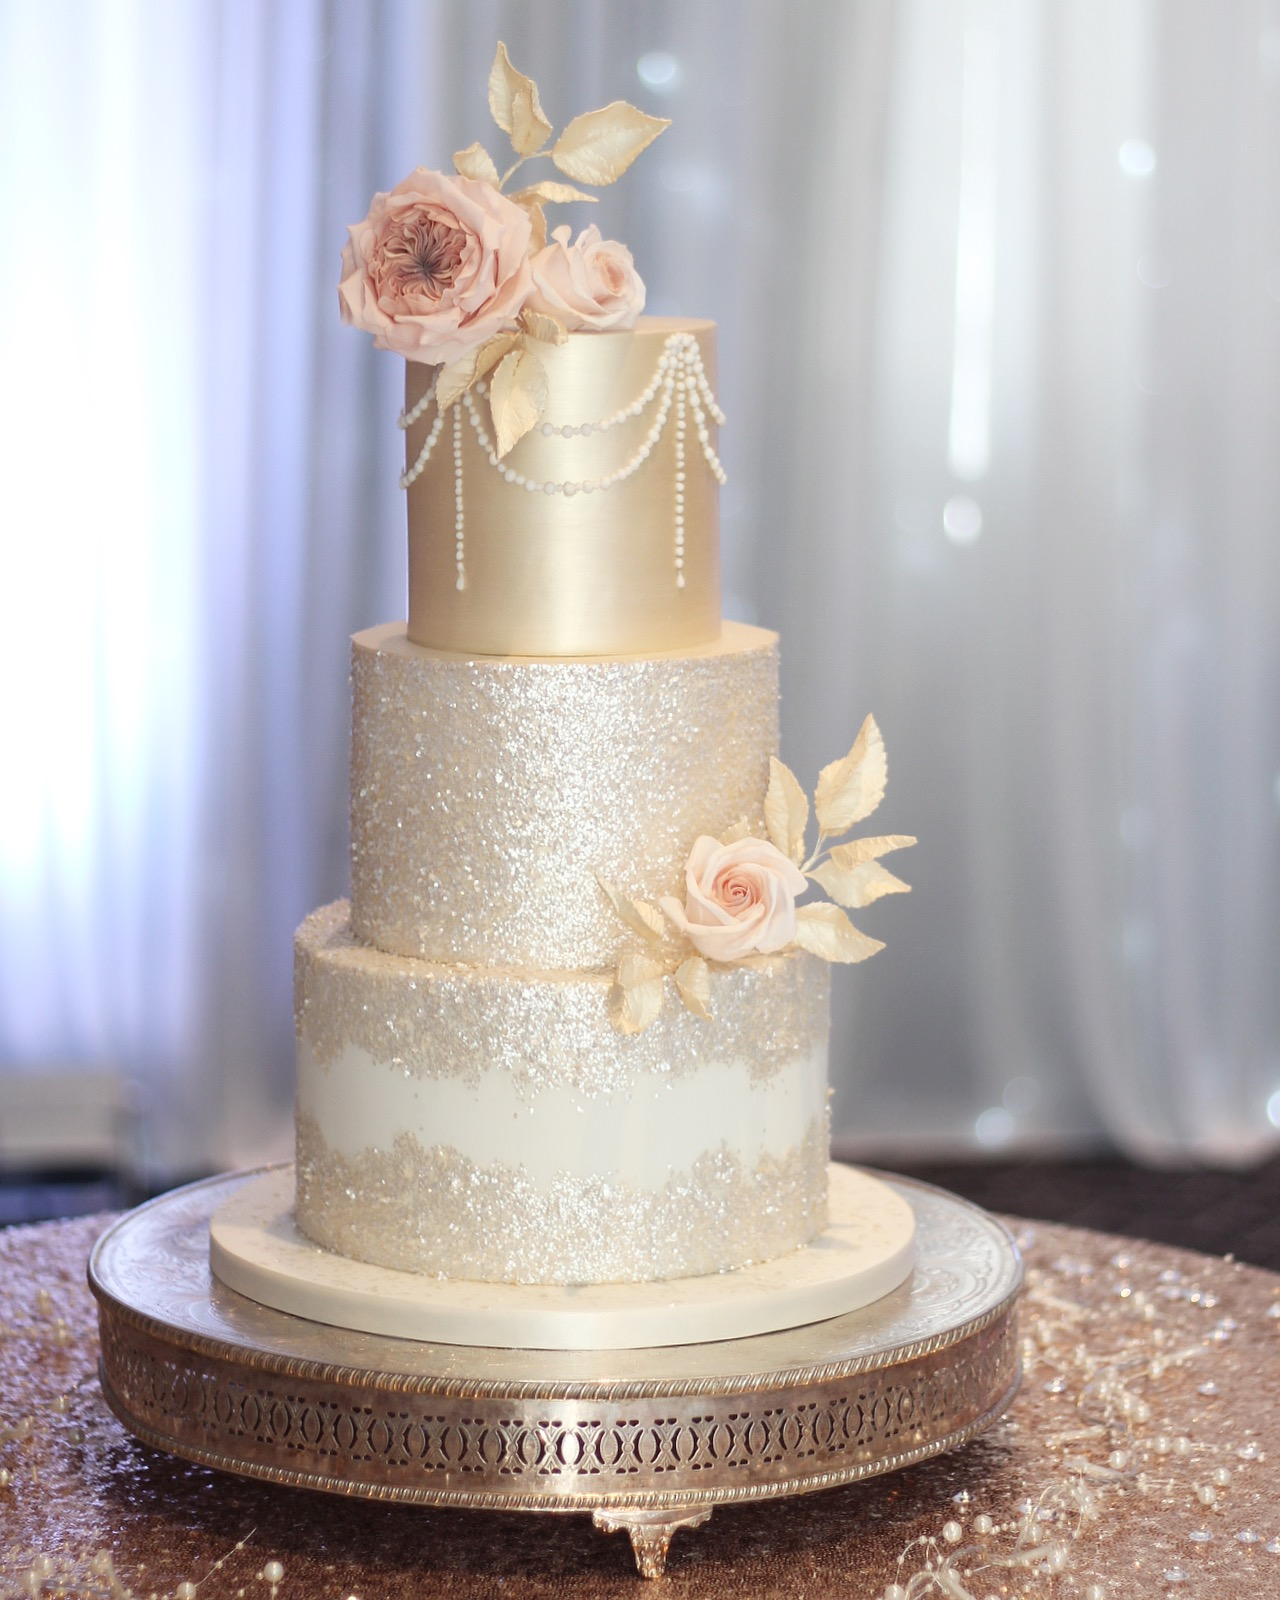 Wedding-cake-southampton-hampshire.JPG